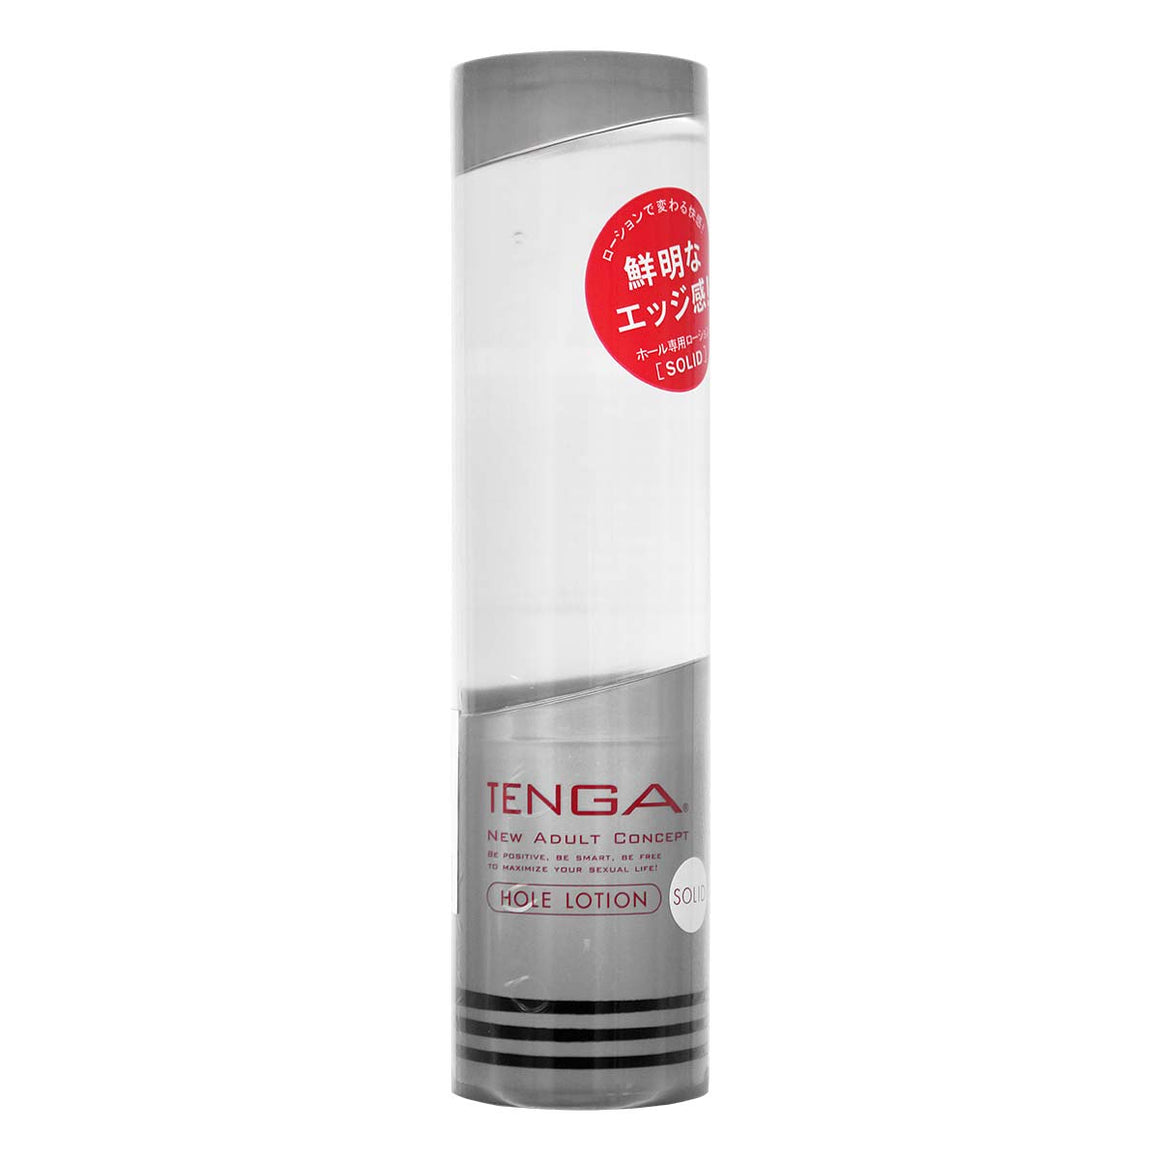 Tenga Hole [SOLID 銀] 170ml 飛機杯專用水性潤滑劑 - Lovenjoy Club